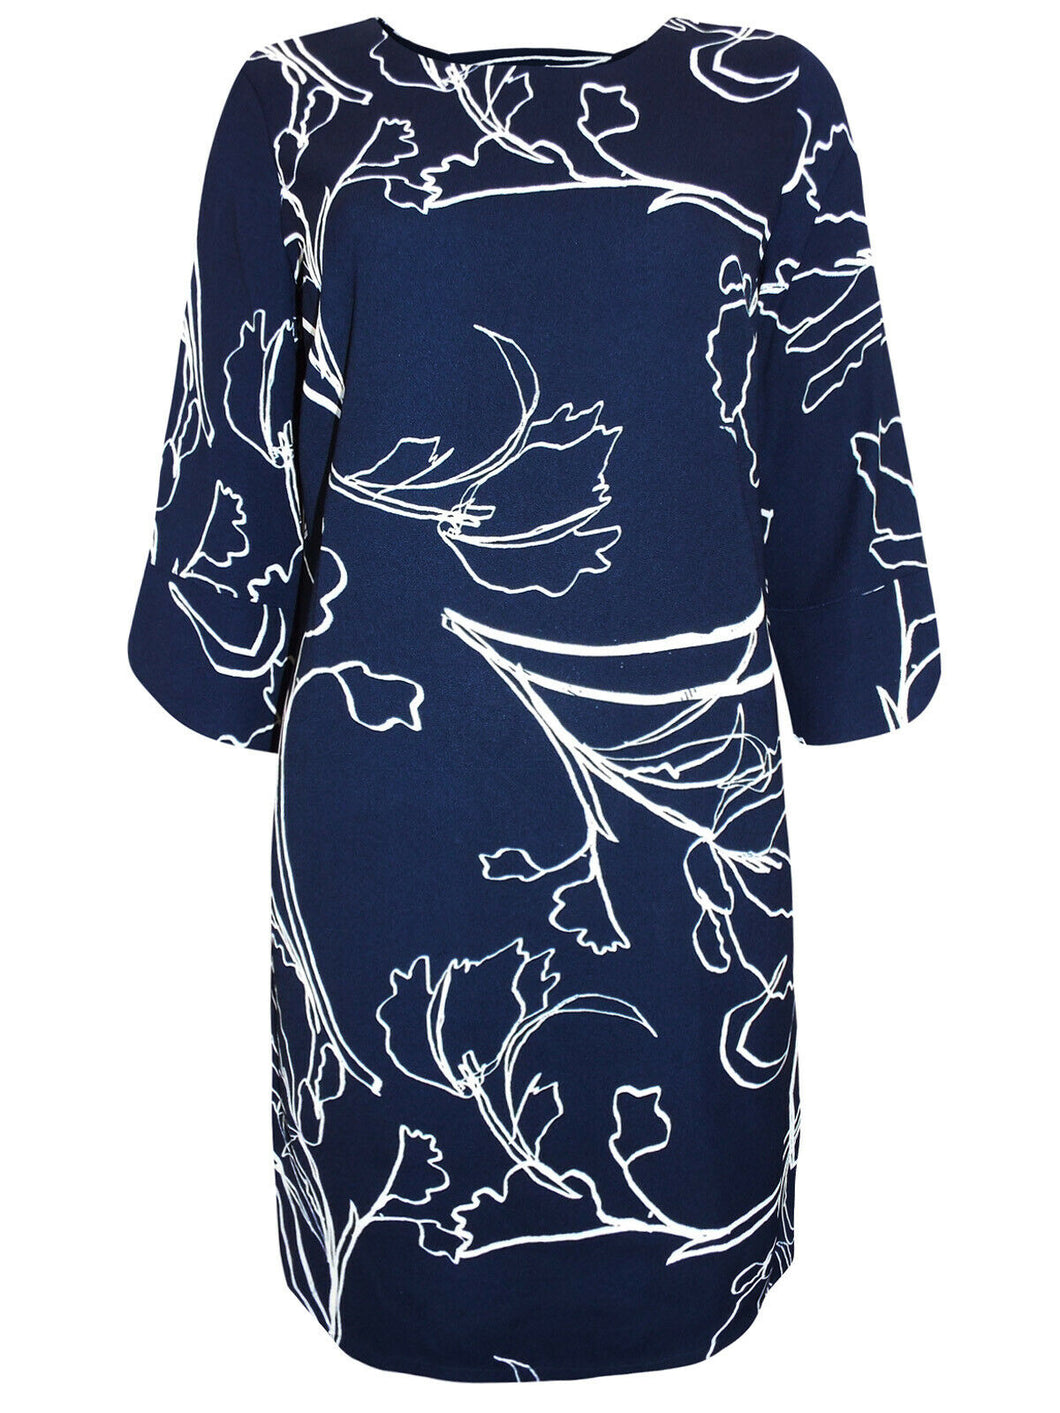 Navy & White Floral Print Keyhole Back 3/4 Sleeves